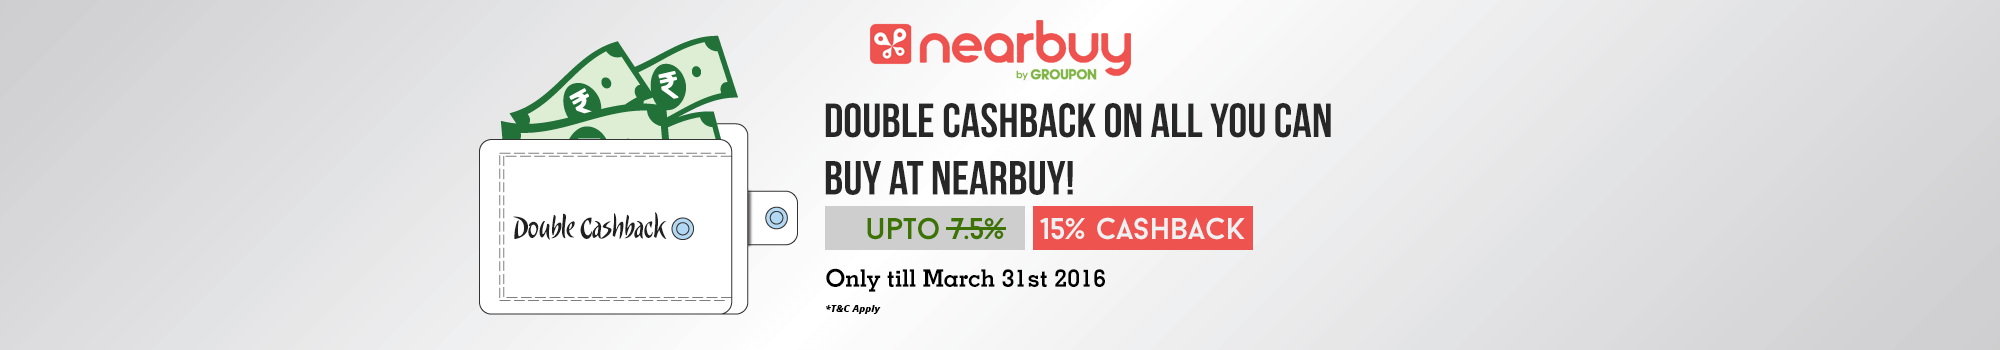 Nearbuy double cashback offer